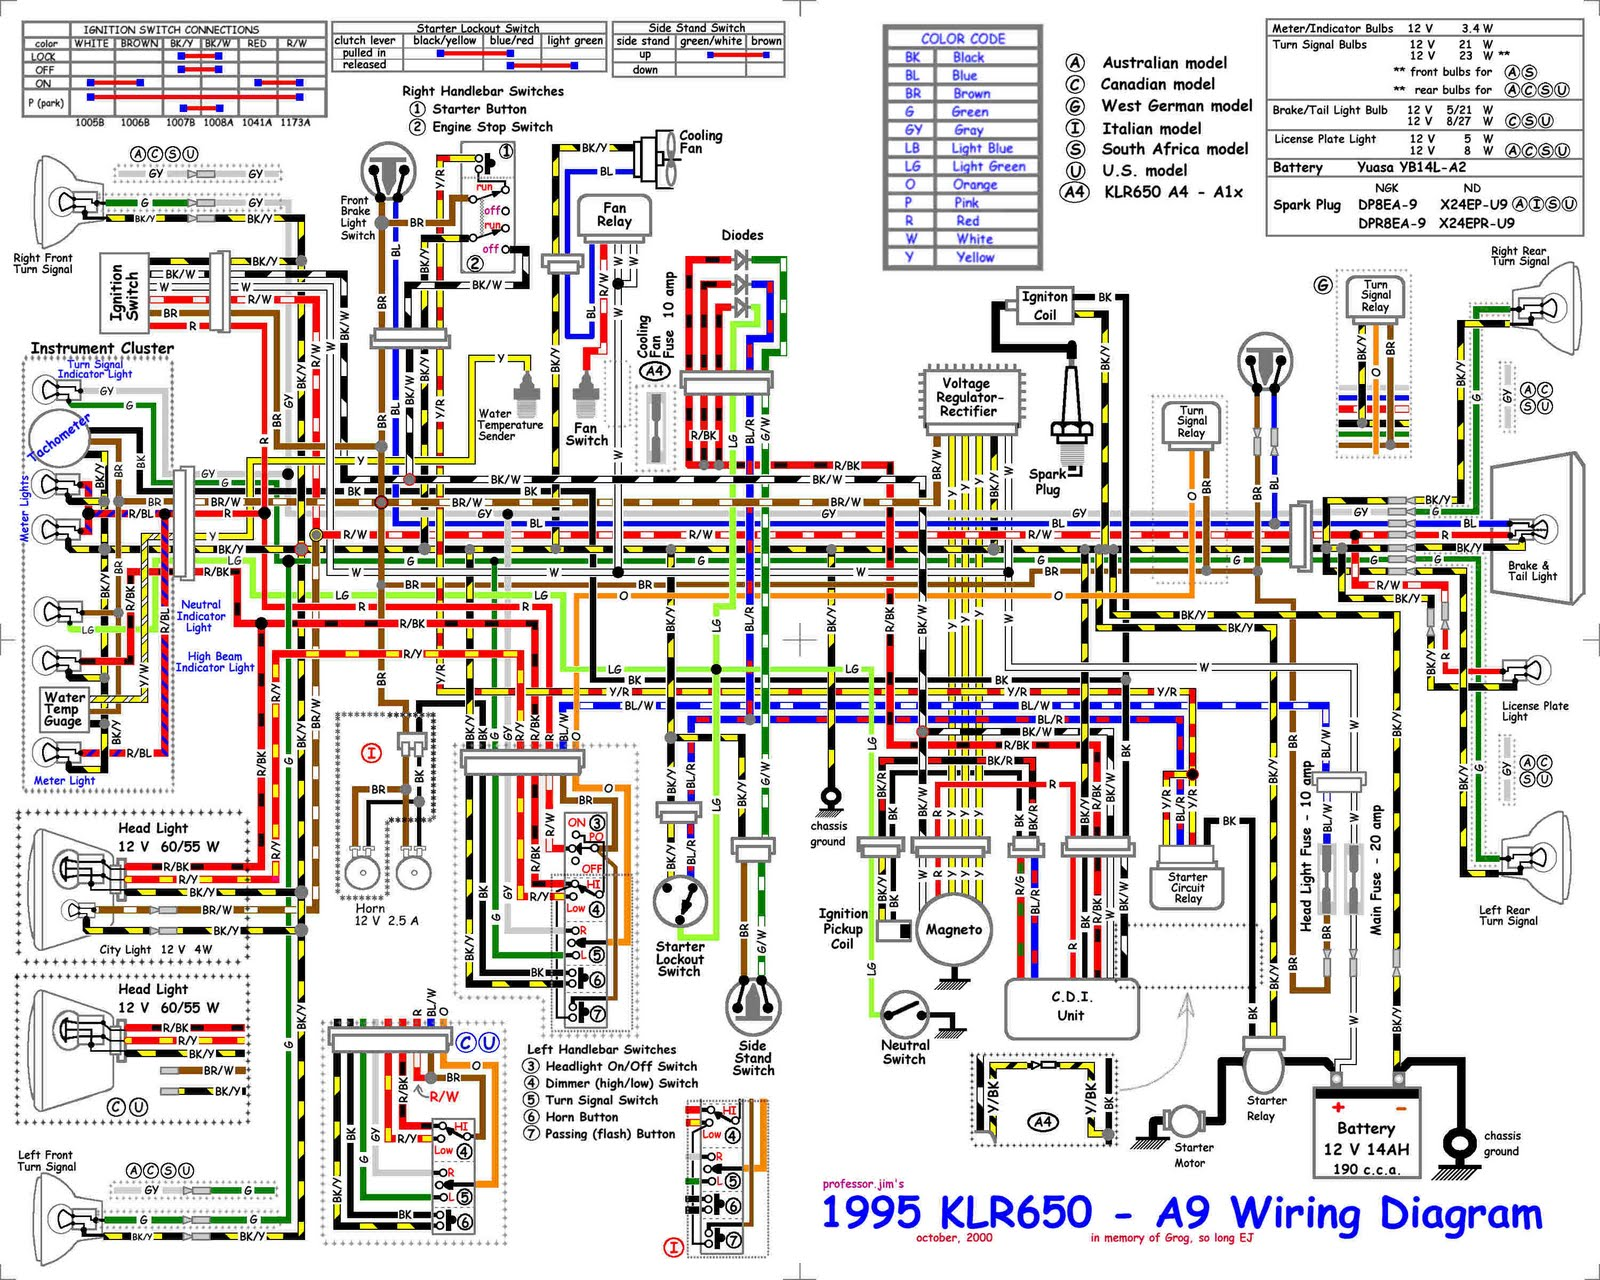 1974 monte carlo wiring diagram 2001 monte carlo wiring diagram 2001 impala radio wiring diagram 2000 Monte Carlo Fuse Box Diagram at alyssarenee.co